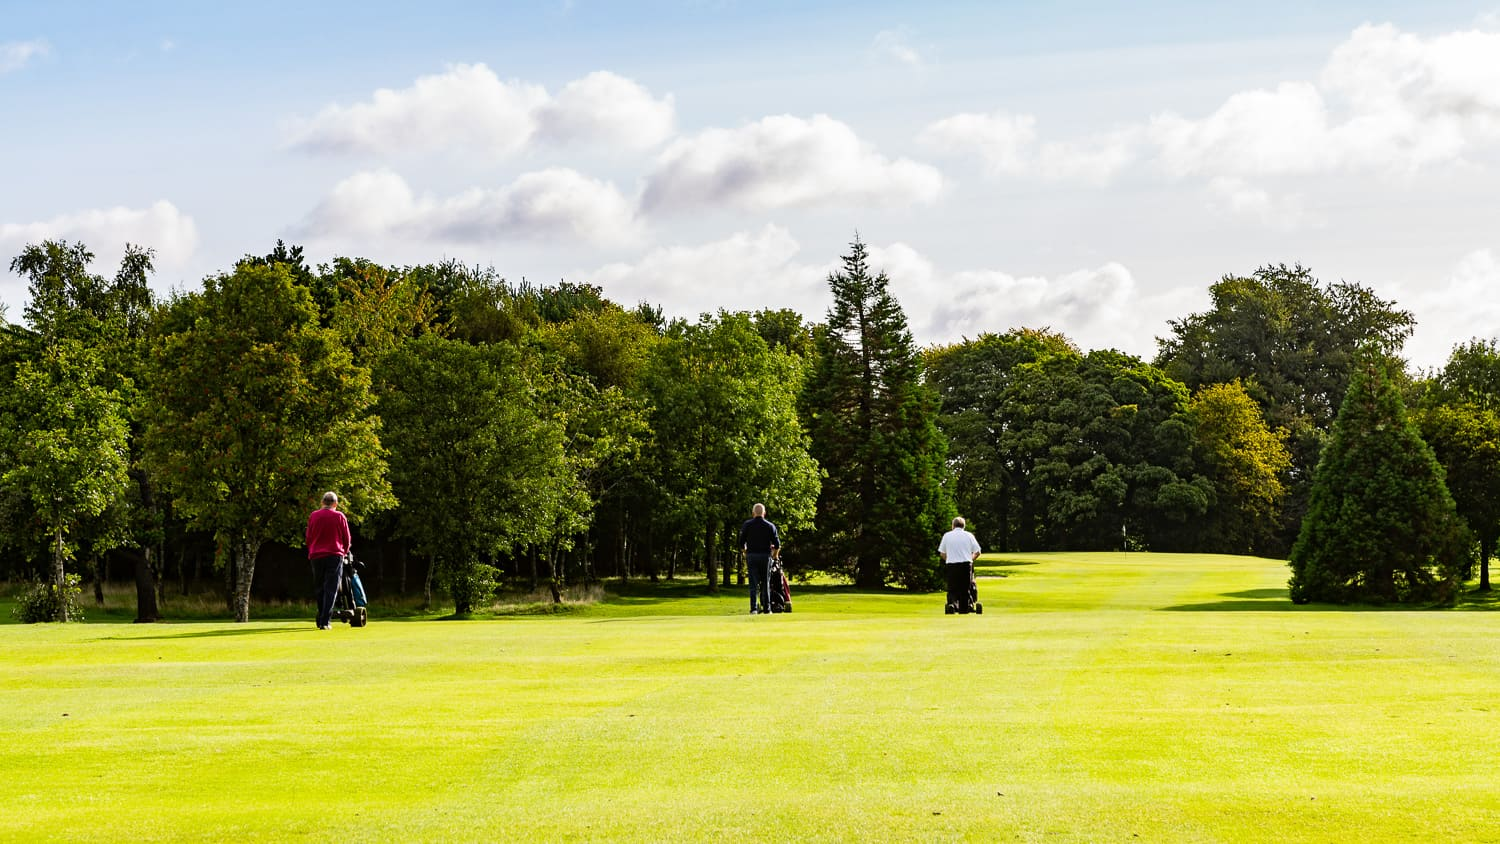 Uphall_Golf_Club_Course_Images (14 of 32)